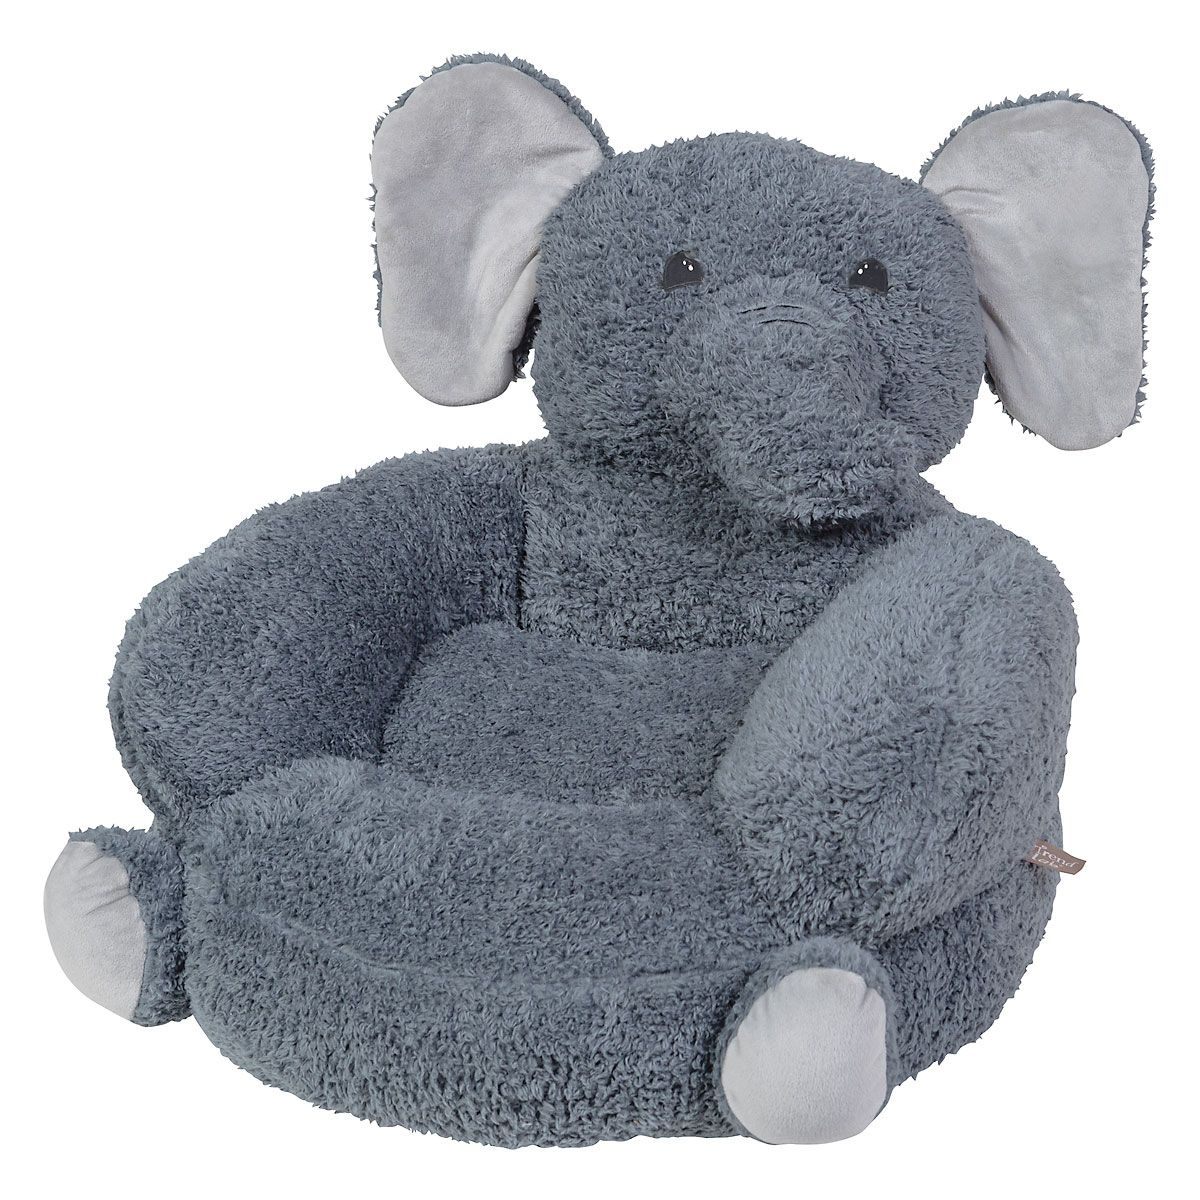 Sherpa Elephant Children's Plush Chair The Elephant Plush Character Chair brings delightful whimsy to your little one's world and to any room of the house. Perfect for reading, relaxing, snuggling. Soft outer surface is ideal for cuddling and hugging. Measures 21  x 19  x 19  with contoured support. 100% polyester plush with 100% polyester fill. Spot clean only; use a damp cloth. Suitable for most children ages 12 months and up. Standard shipping only. Expedited shipping not available. Cannot be sent outside the 48 contiguous states, or to P.O. Box, APO/FPO, or foreign addresses.